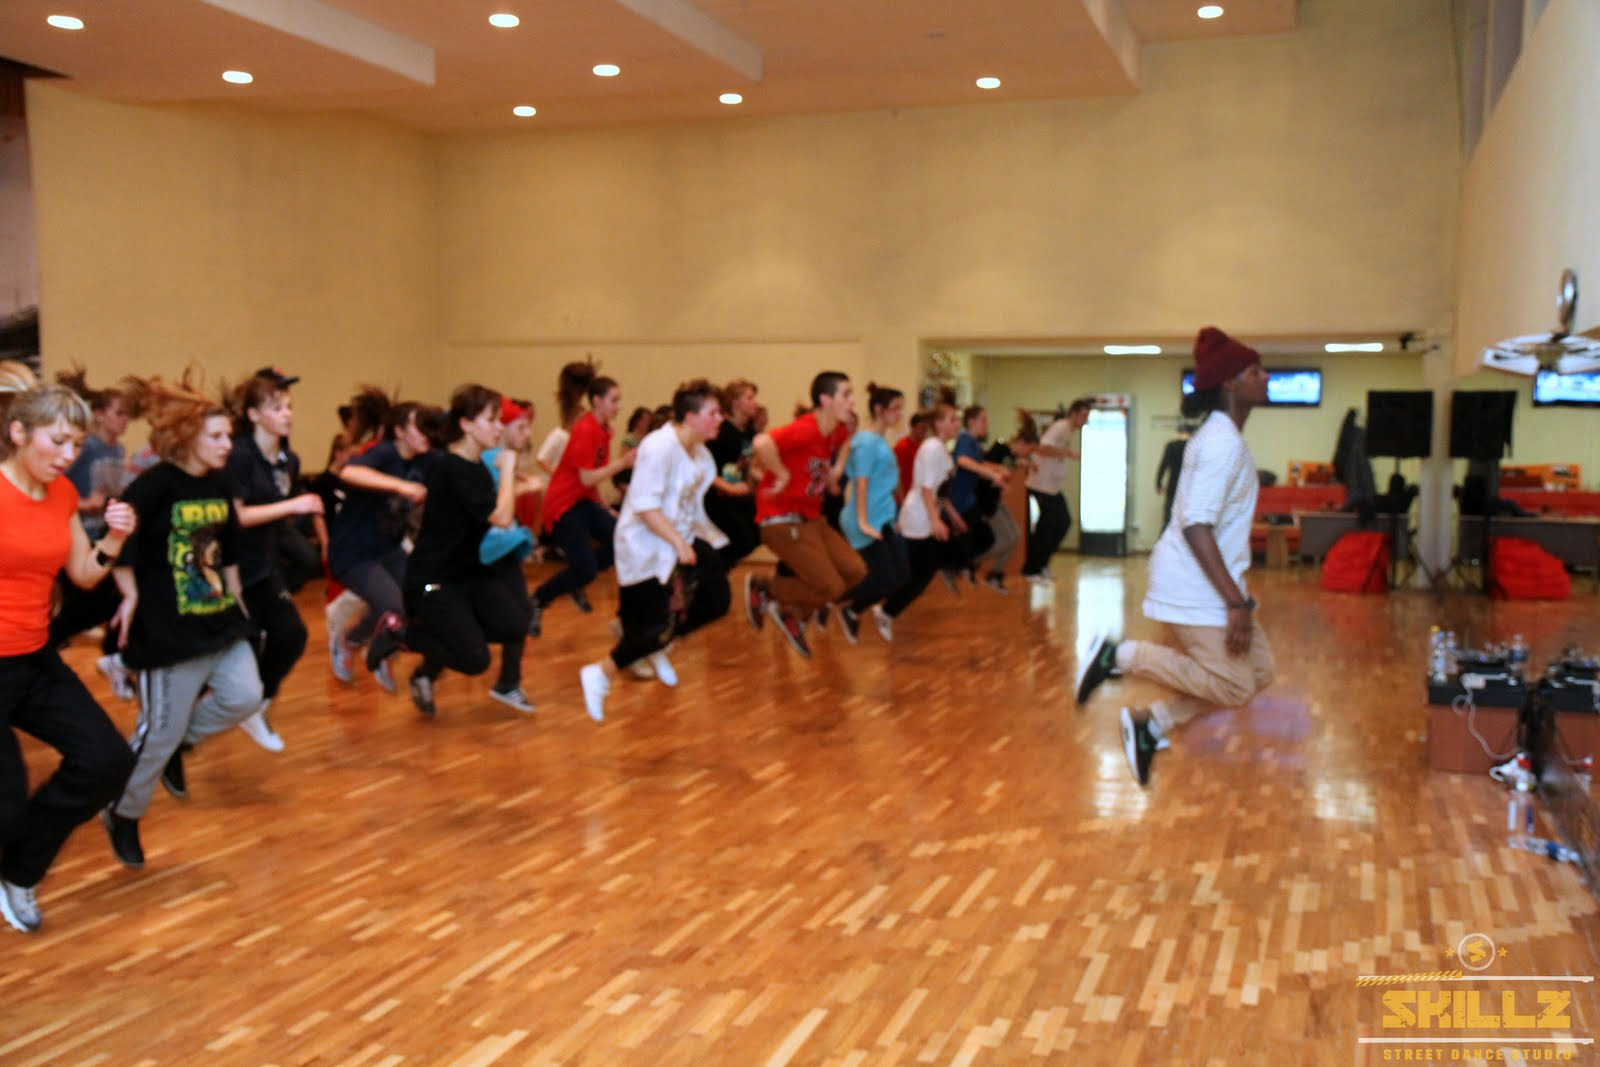 Hip- Hop workshop with Shaadow (UK) - IMG_1779.jpg